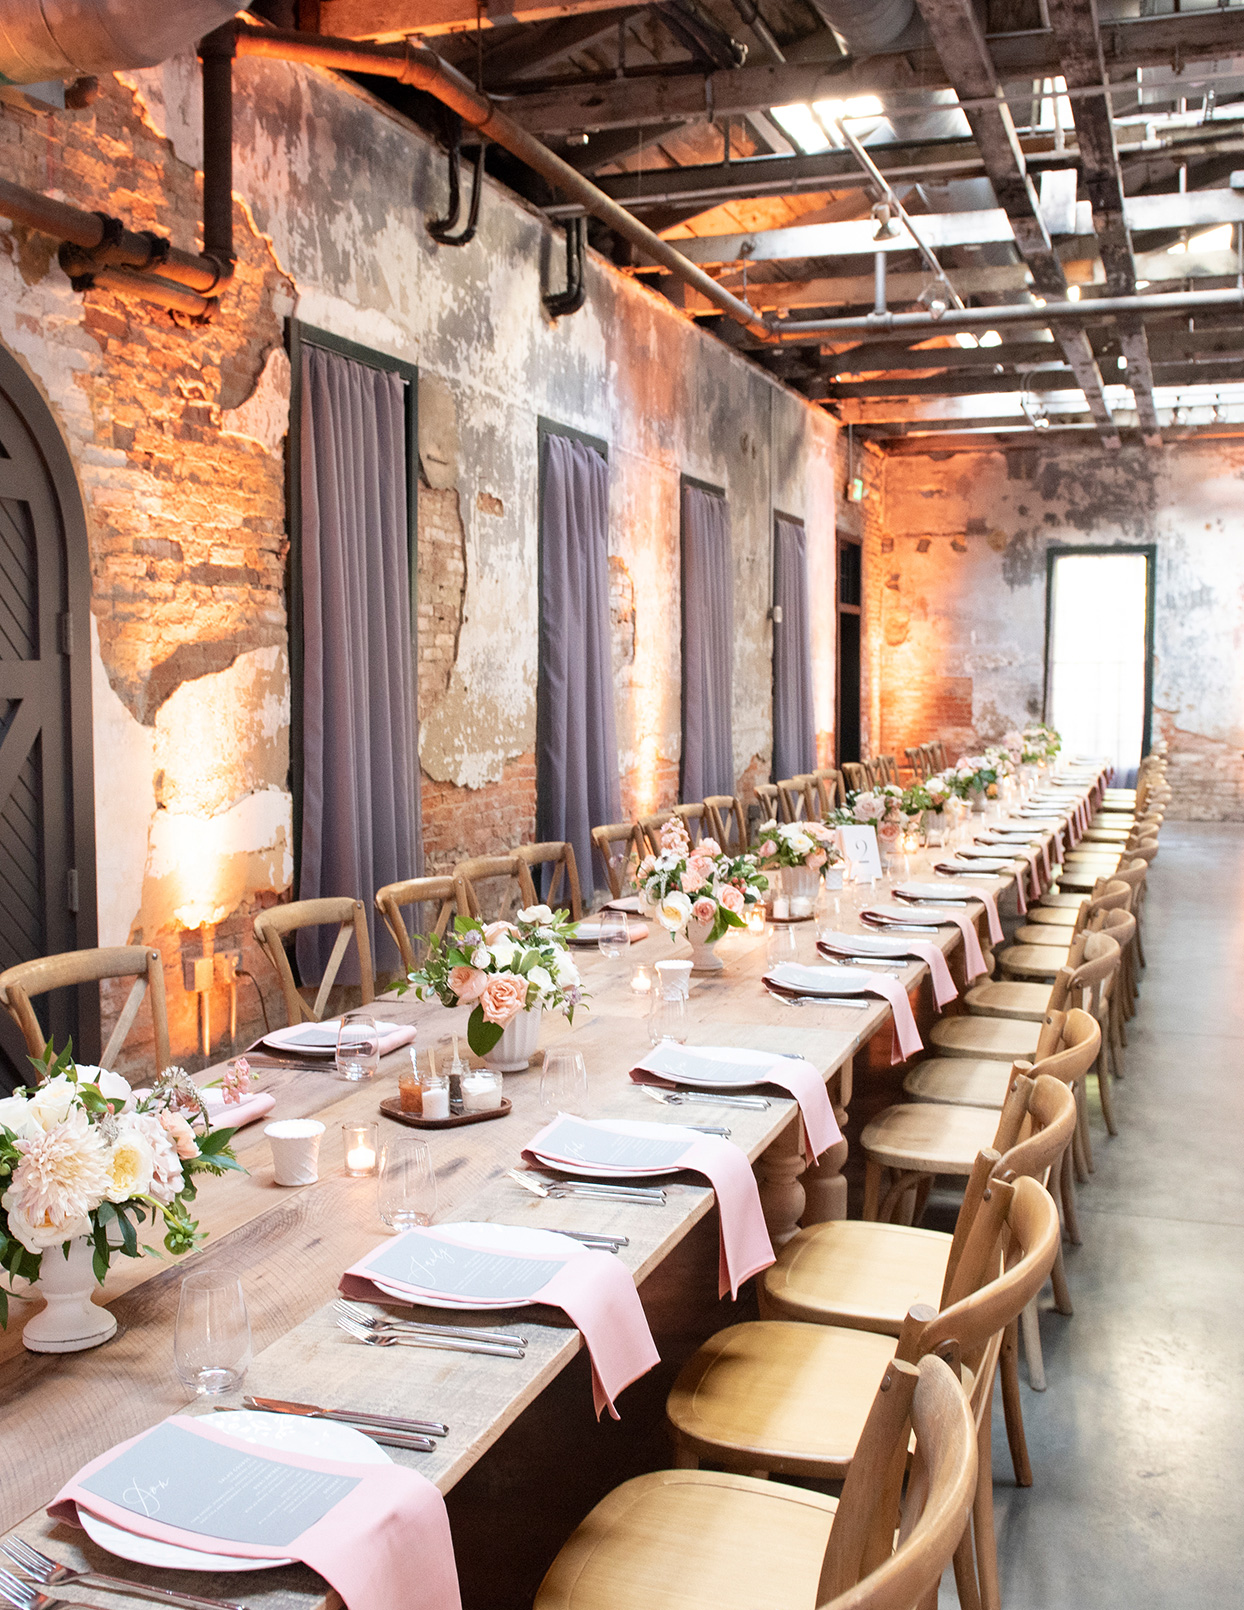 shelby david wedding long wooden table with pink place settings